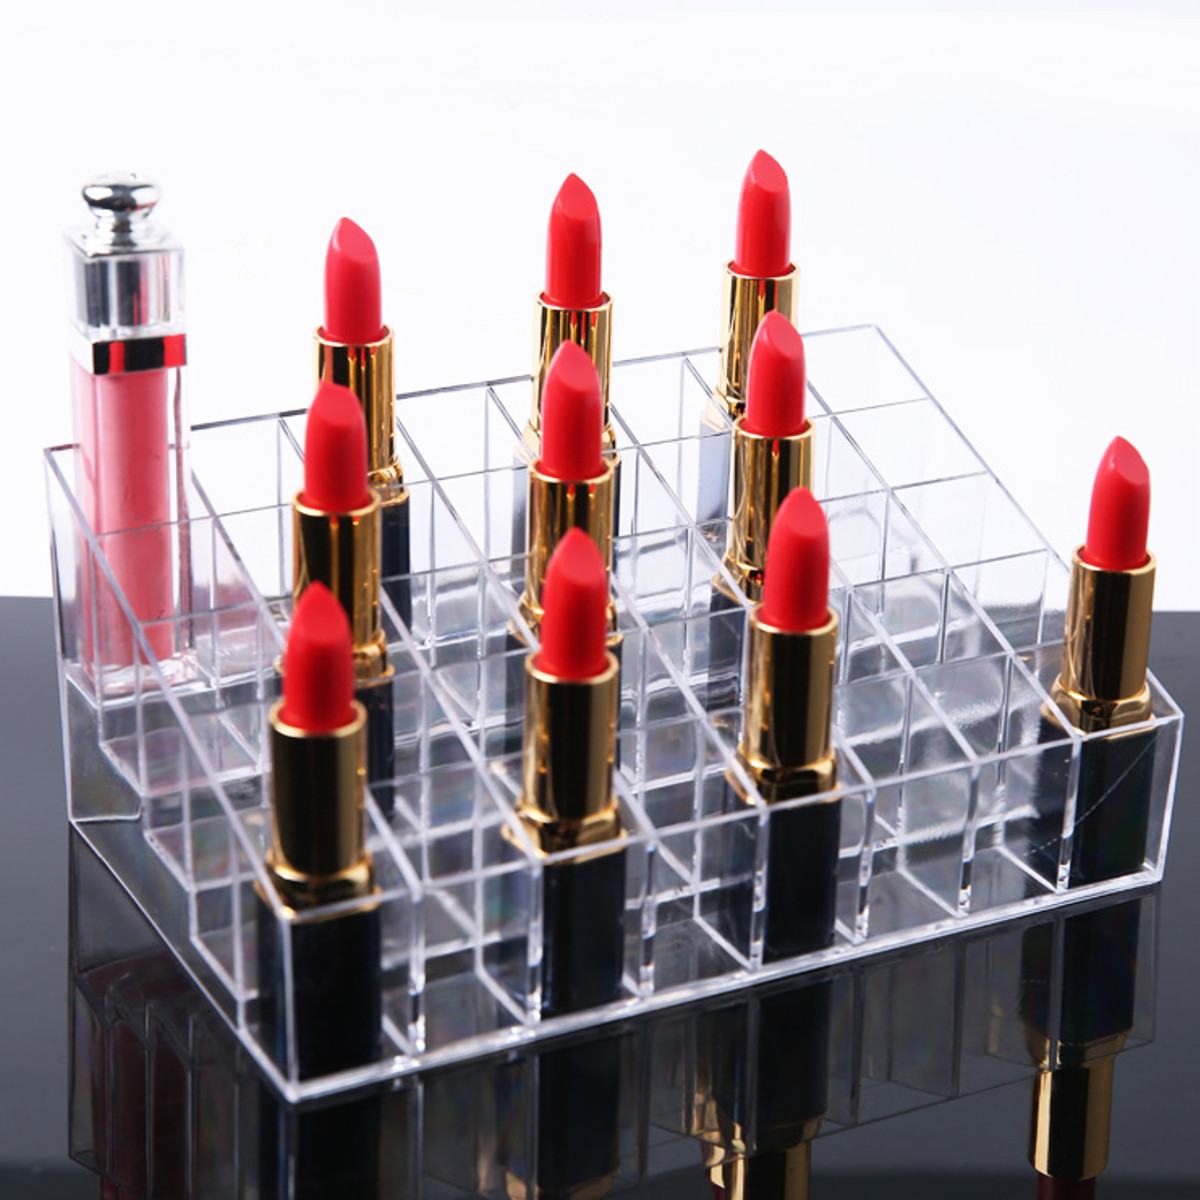 40 Clear Acrylic Lipstick Holder Stand Display Cosmetic Makeup Case Acrylic Cosmetic Organizer